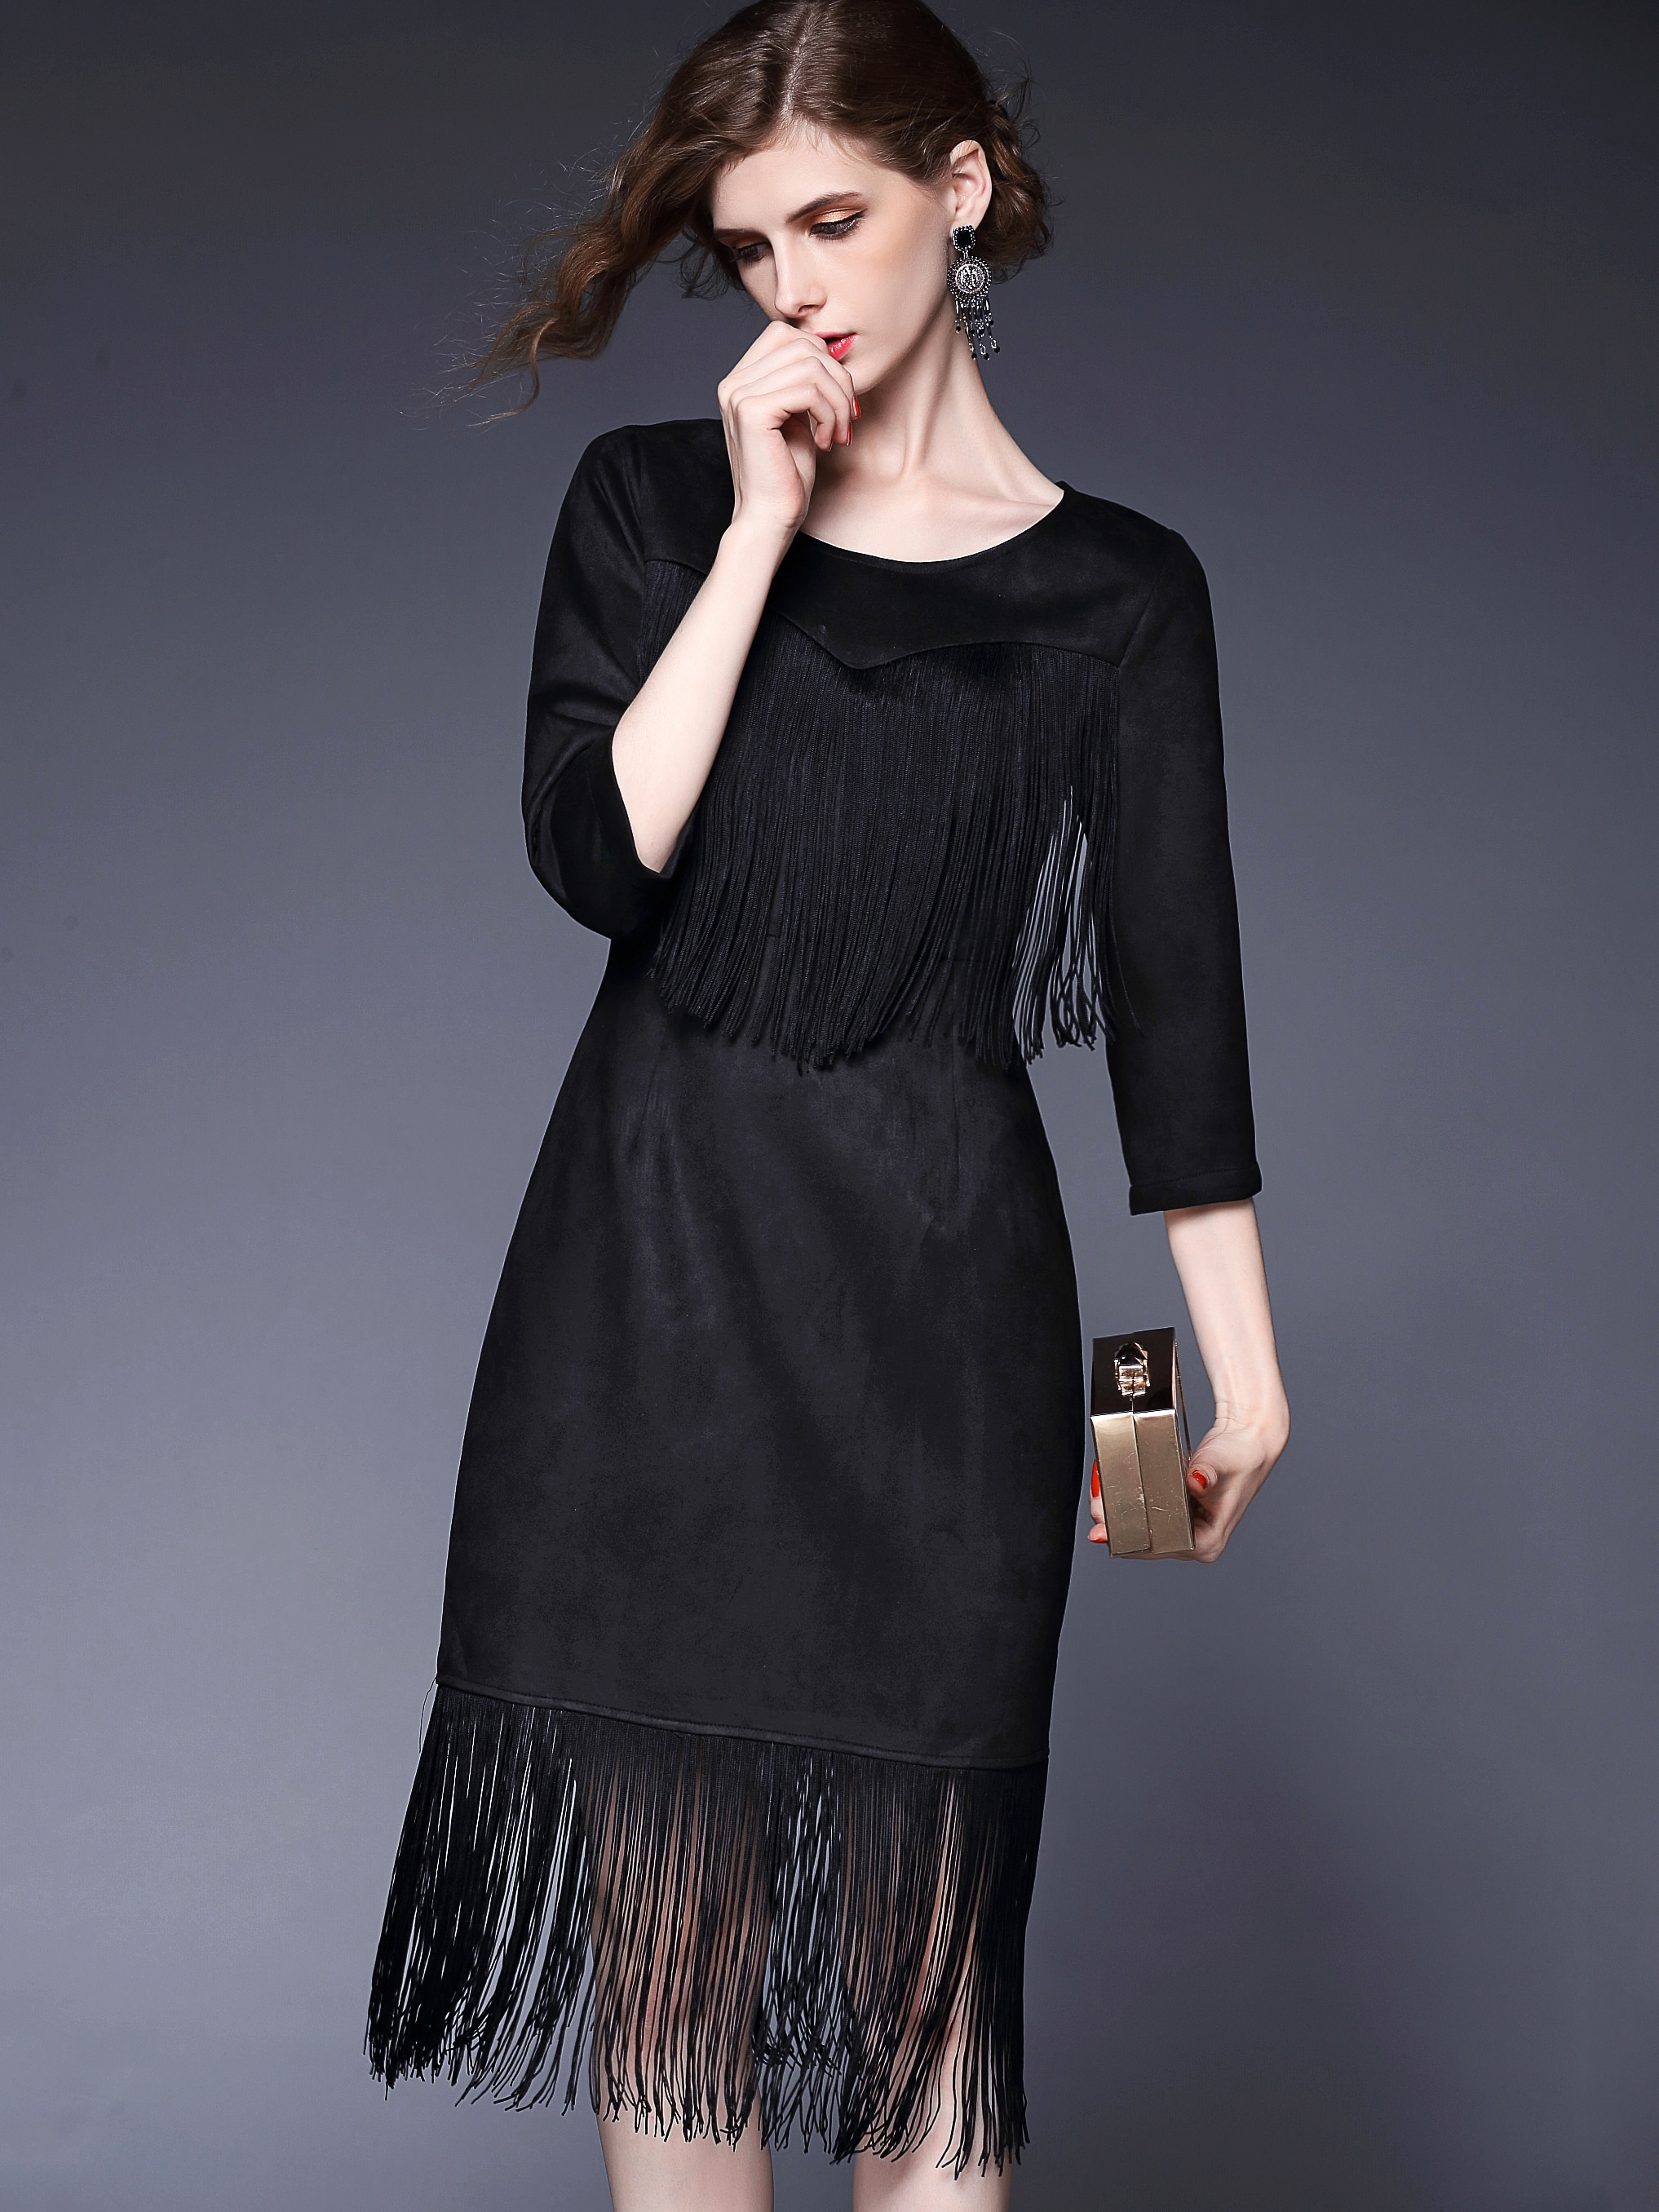 Black Round Neck Length Sleeve Tassel Dress